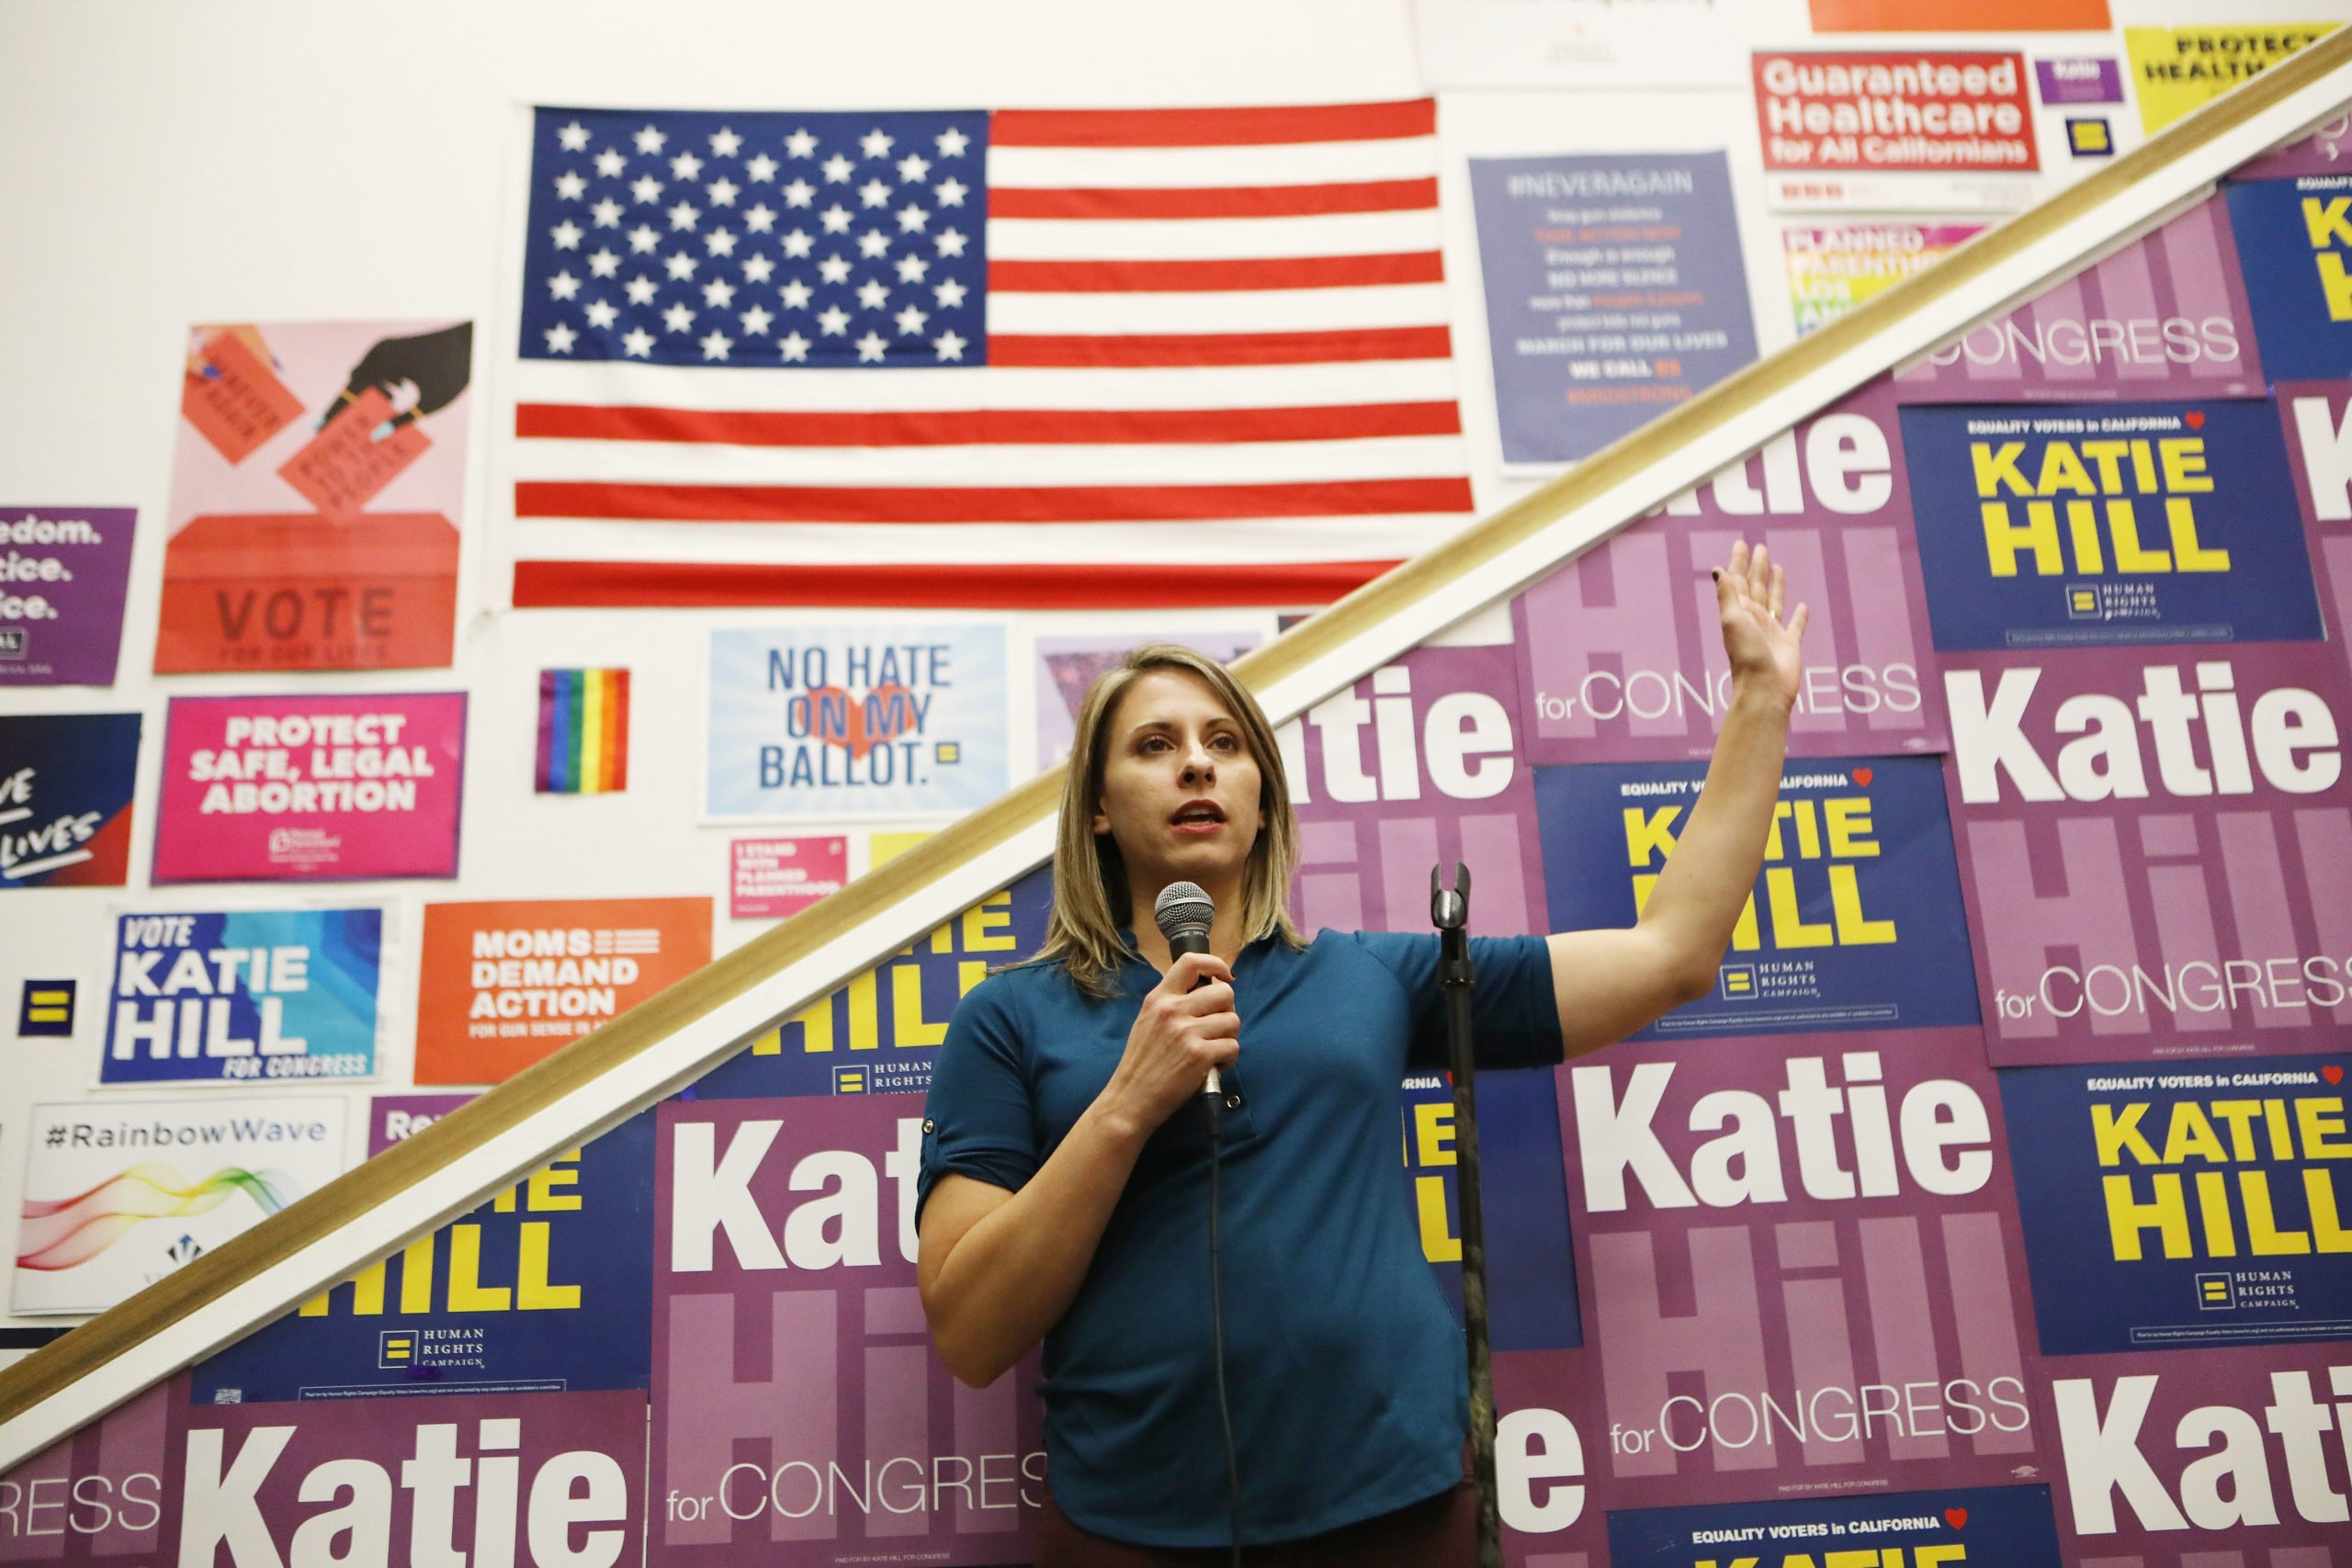 STEVENSON RANCH, CA - NOVEMBER 05: Democratic Congressional candidate Katie Hill speaks to supporters at a canvass launch in California's 25th Congressional district on November 5, 2018 in Stevenson Ranch, California. Hill is running against U.S. Rep. Steve Knight (R-CA). Democrats are targeting at least six congressional seats in California, currently held by Republicans, where Hillary Clinton received more votes in the 2016 presidential election. These districts have become the centerpiece of their strategy to flip the House and represent nearly one-third of the 23 seats needed for the Democrats to take control of the chamber in the November 6 midterm elections. (Photo by Mario Tama/Getty Images)